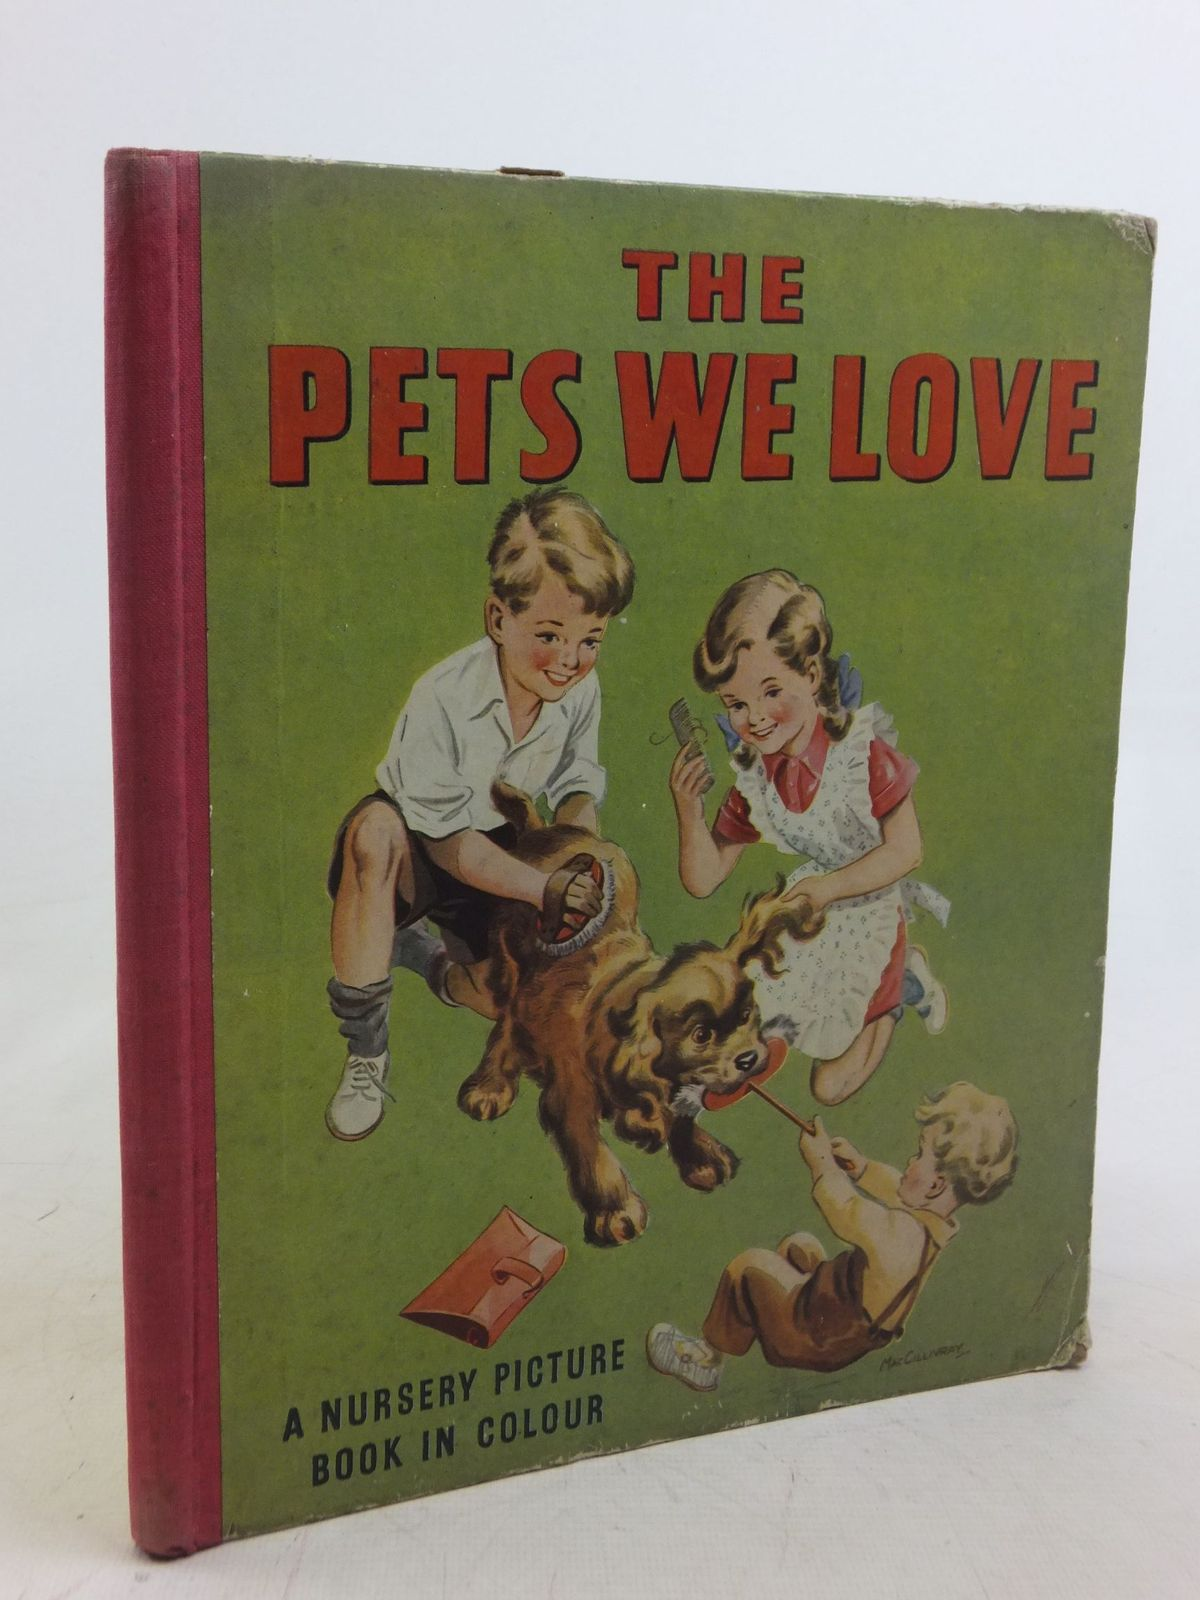 Photo of THE PETS WE LOVE PICTURE BOOK published by Sampson Low, Marston & Co. Ltd. (STOCK CODE: 1712644)  for sale by Stella & Rose's Books